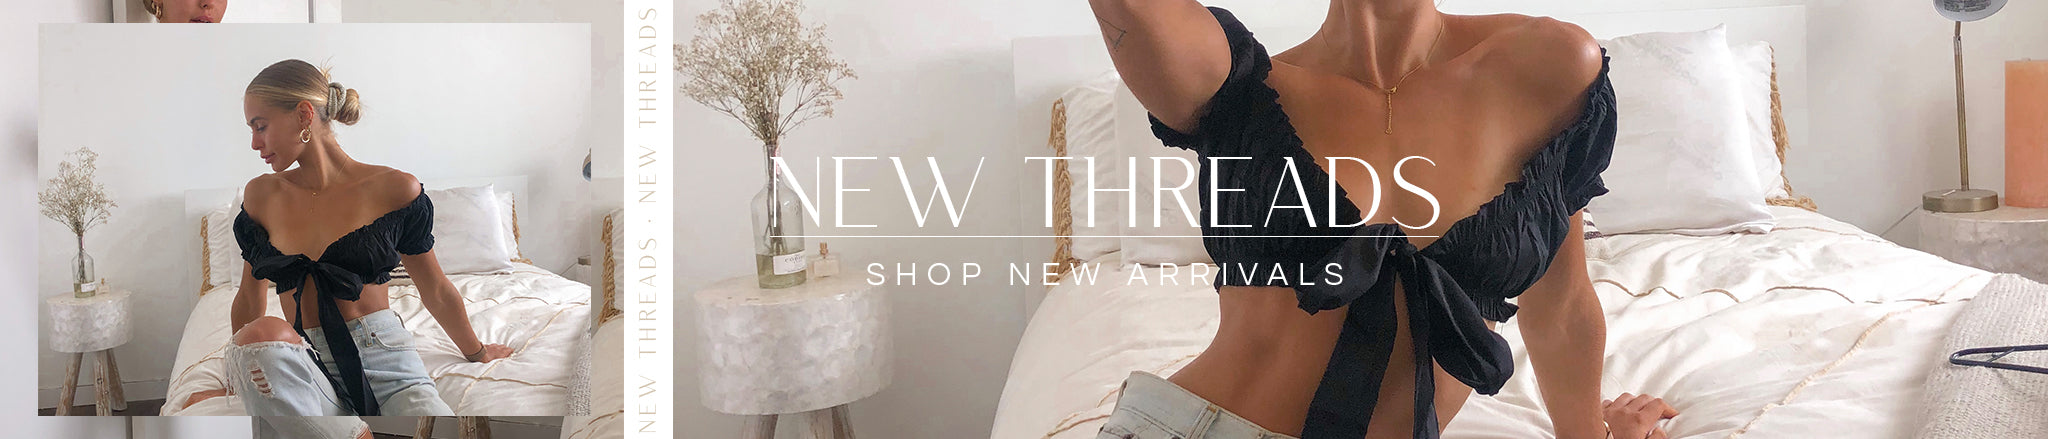 New Threads banner featuring a black cropped tie top and distressed denim.